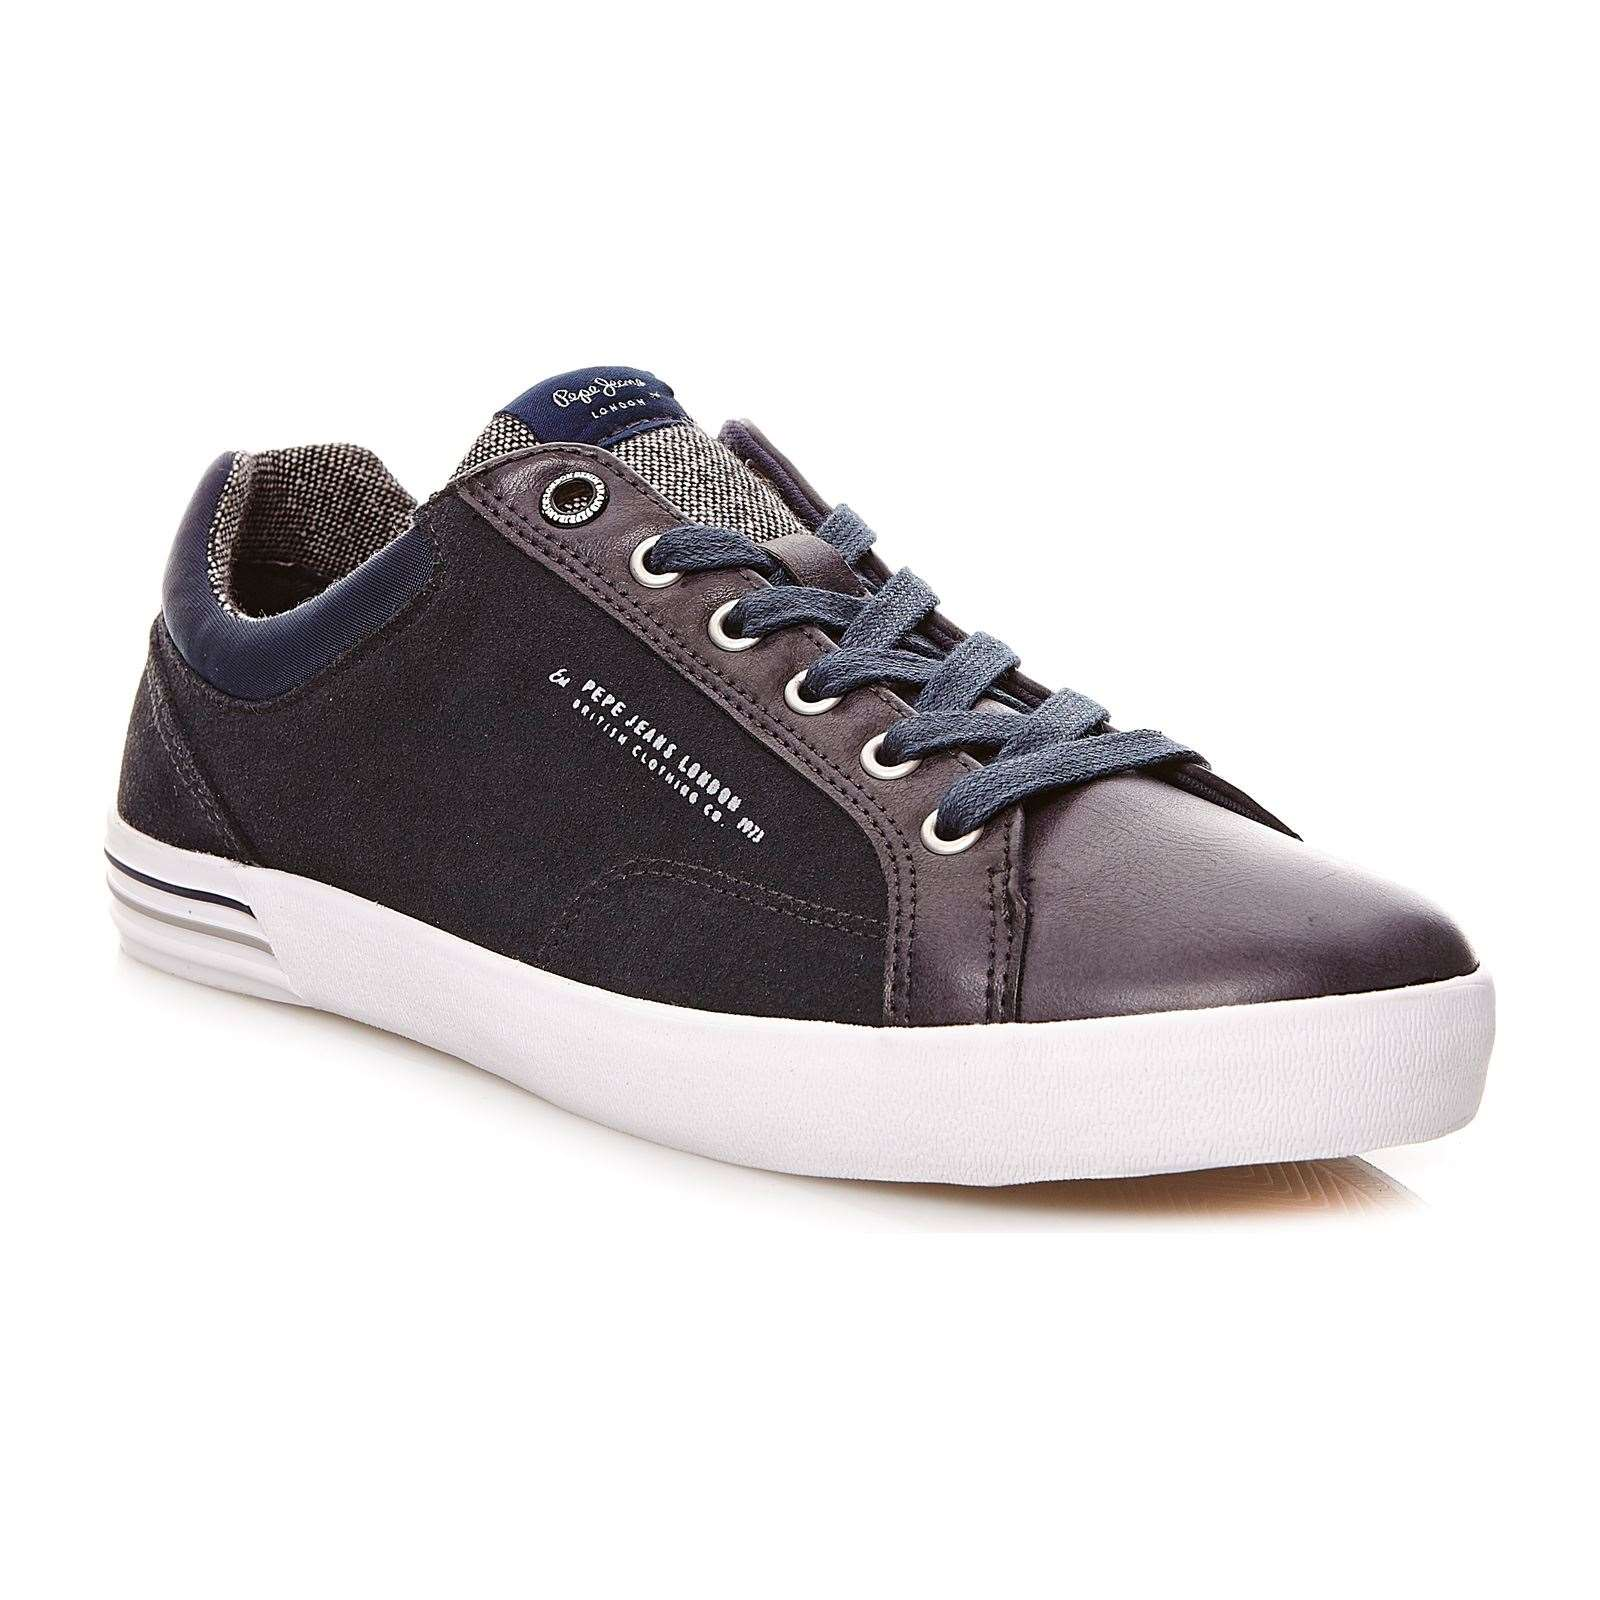 Pepe Jeans Footwear North Mix - Sneakers - bleu marine